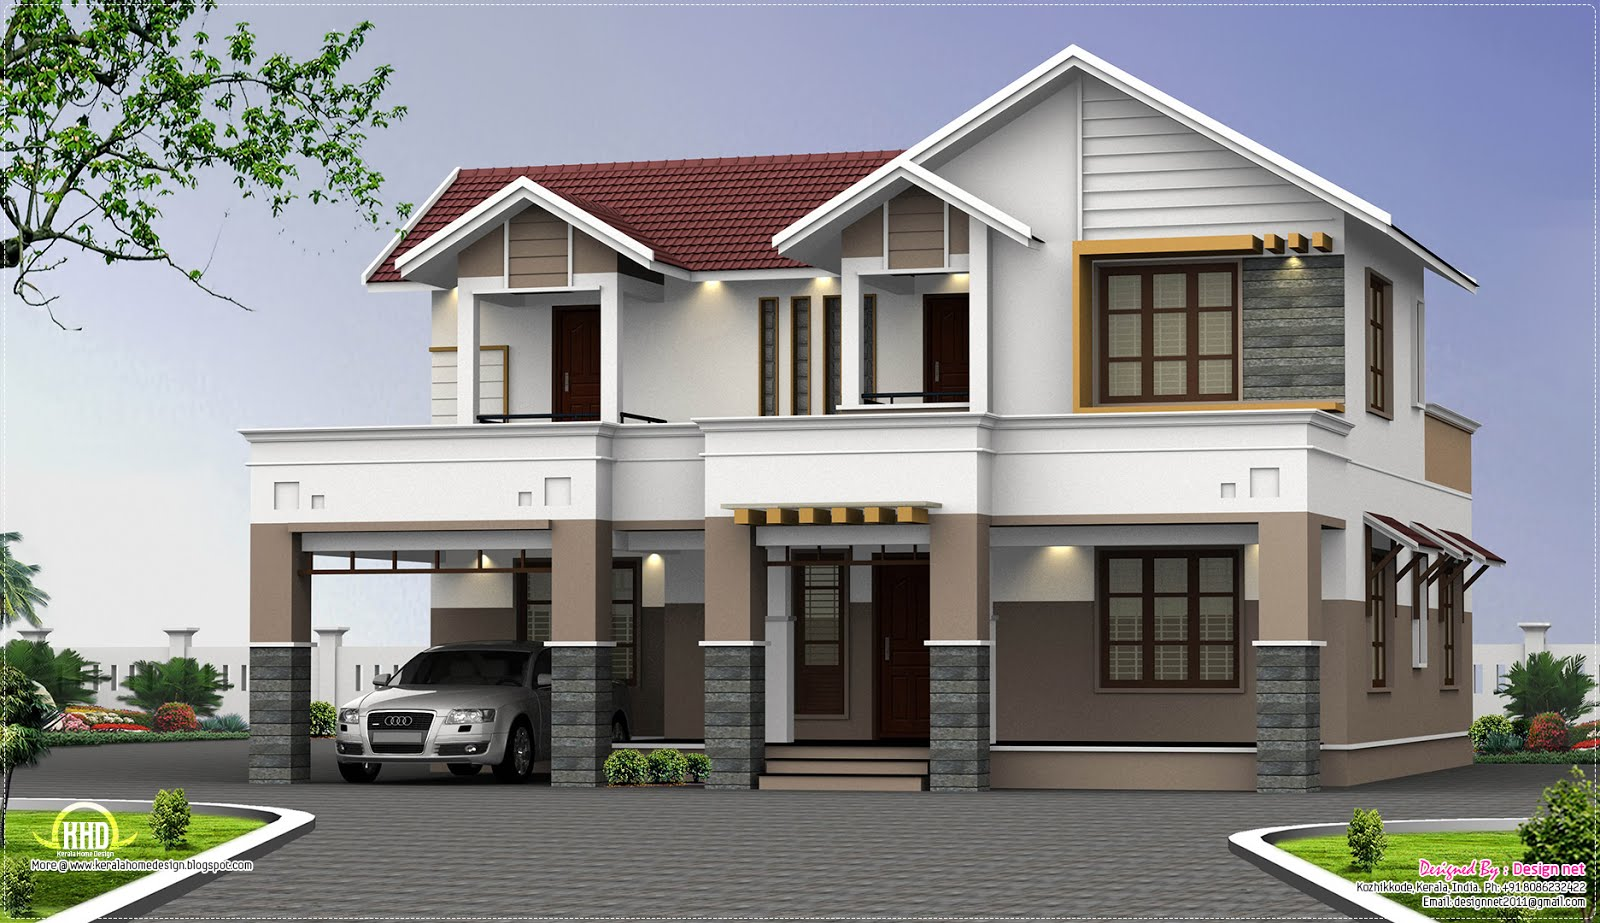 Elevation Of Double Storey Building : Sq feet two storey house elevation kerala home